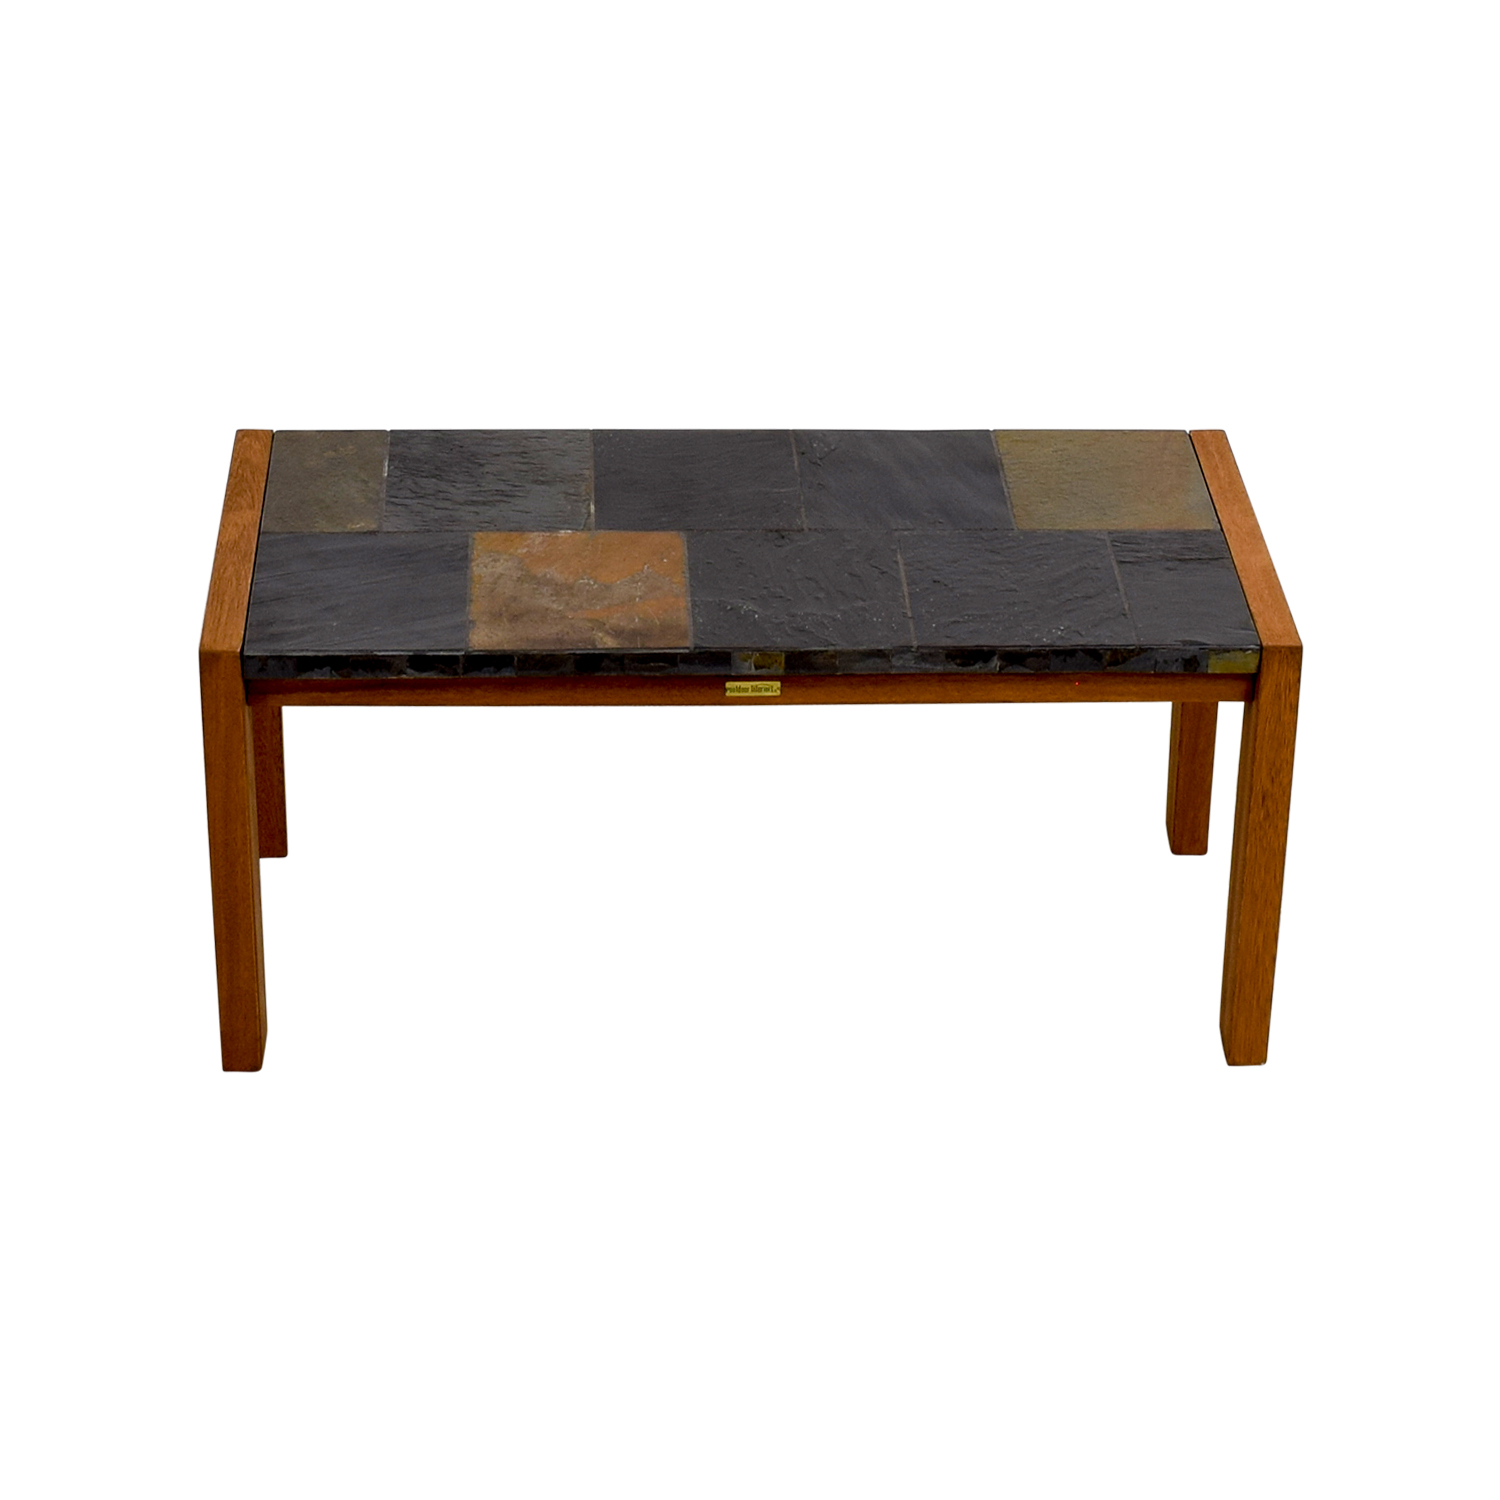 Outdoor Interiors Outdoor Interiors Slate Mosaic Coffee Table price